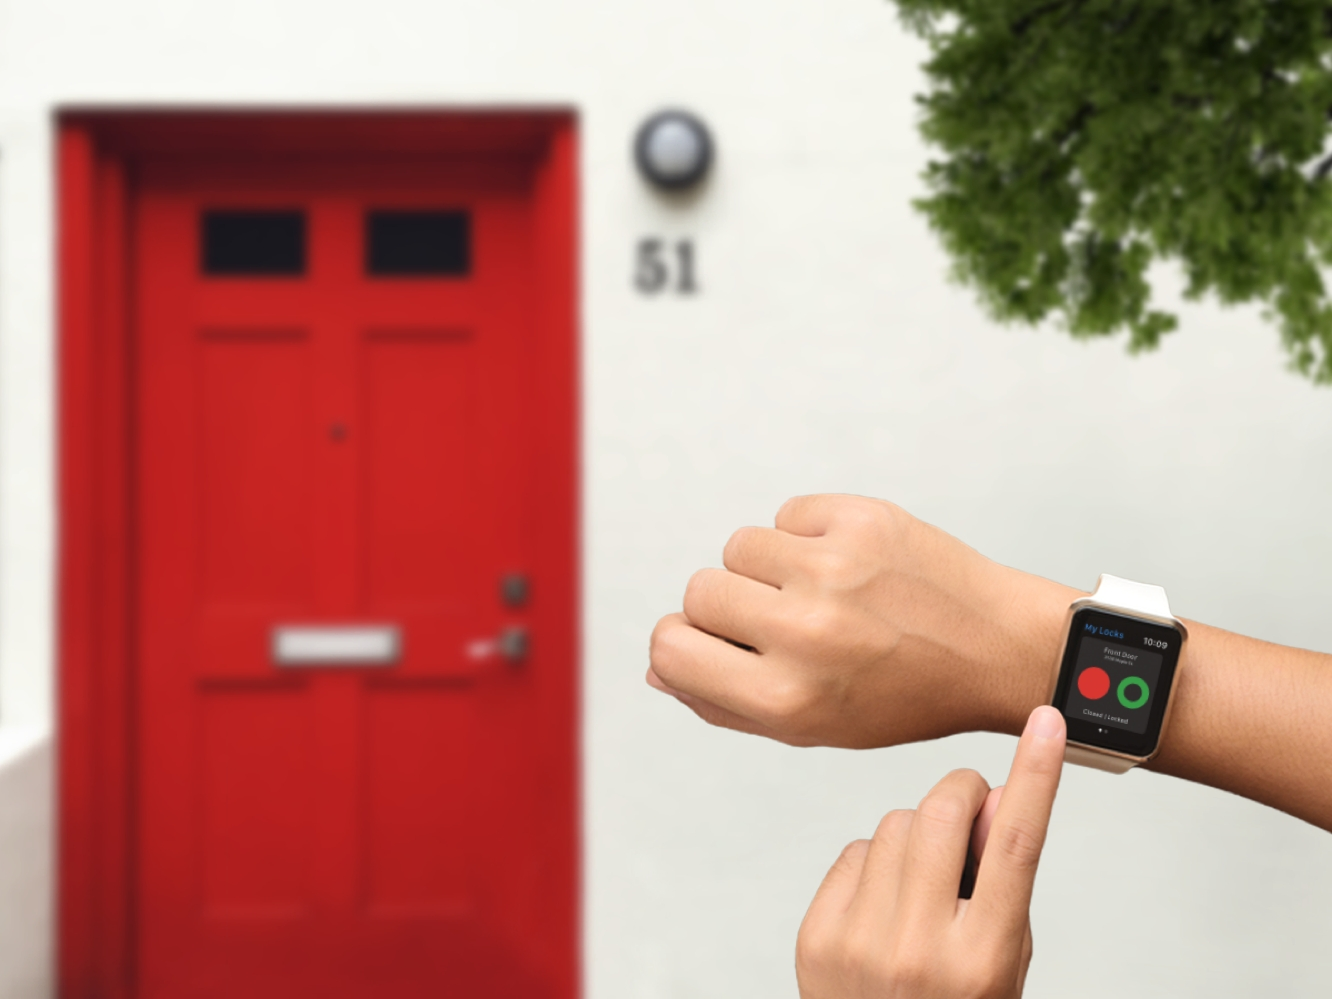 August Apple Watch app now allows untethered Smart Lock control